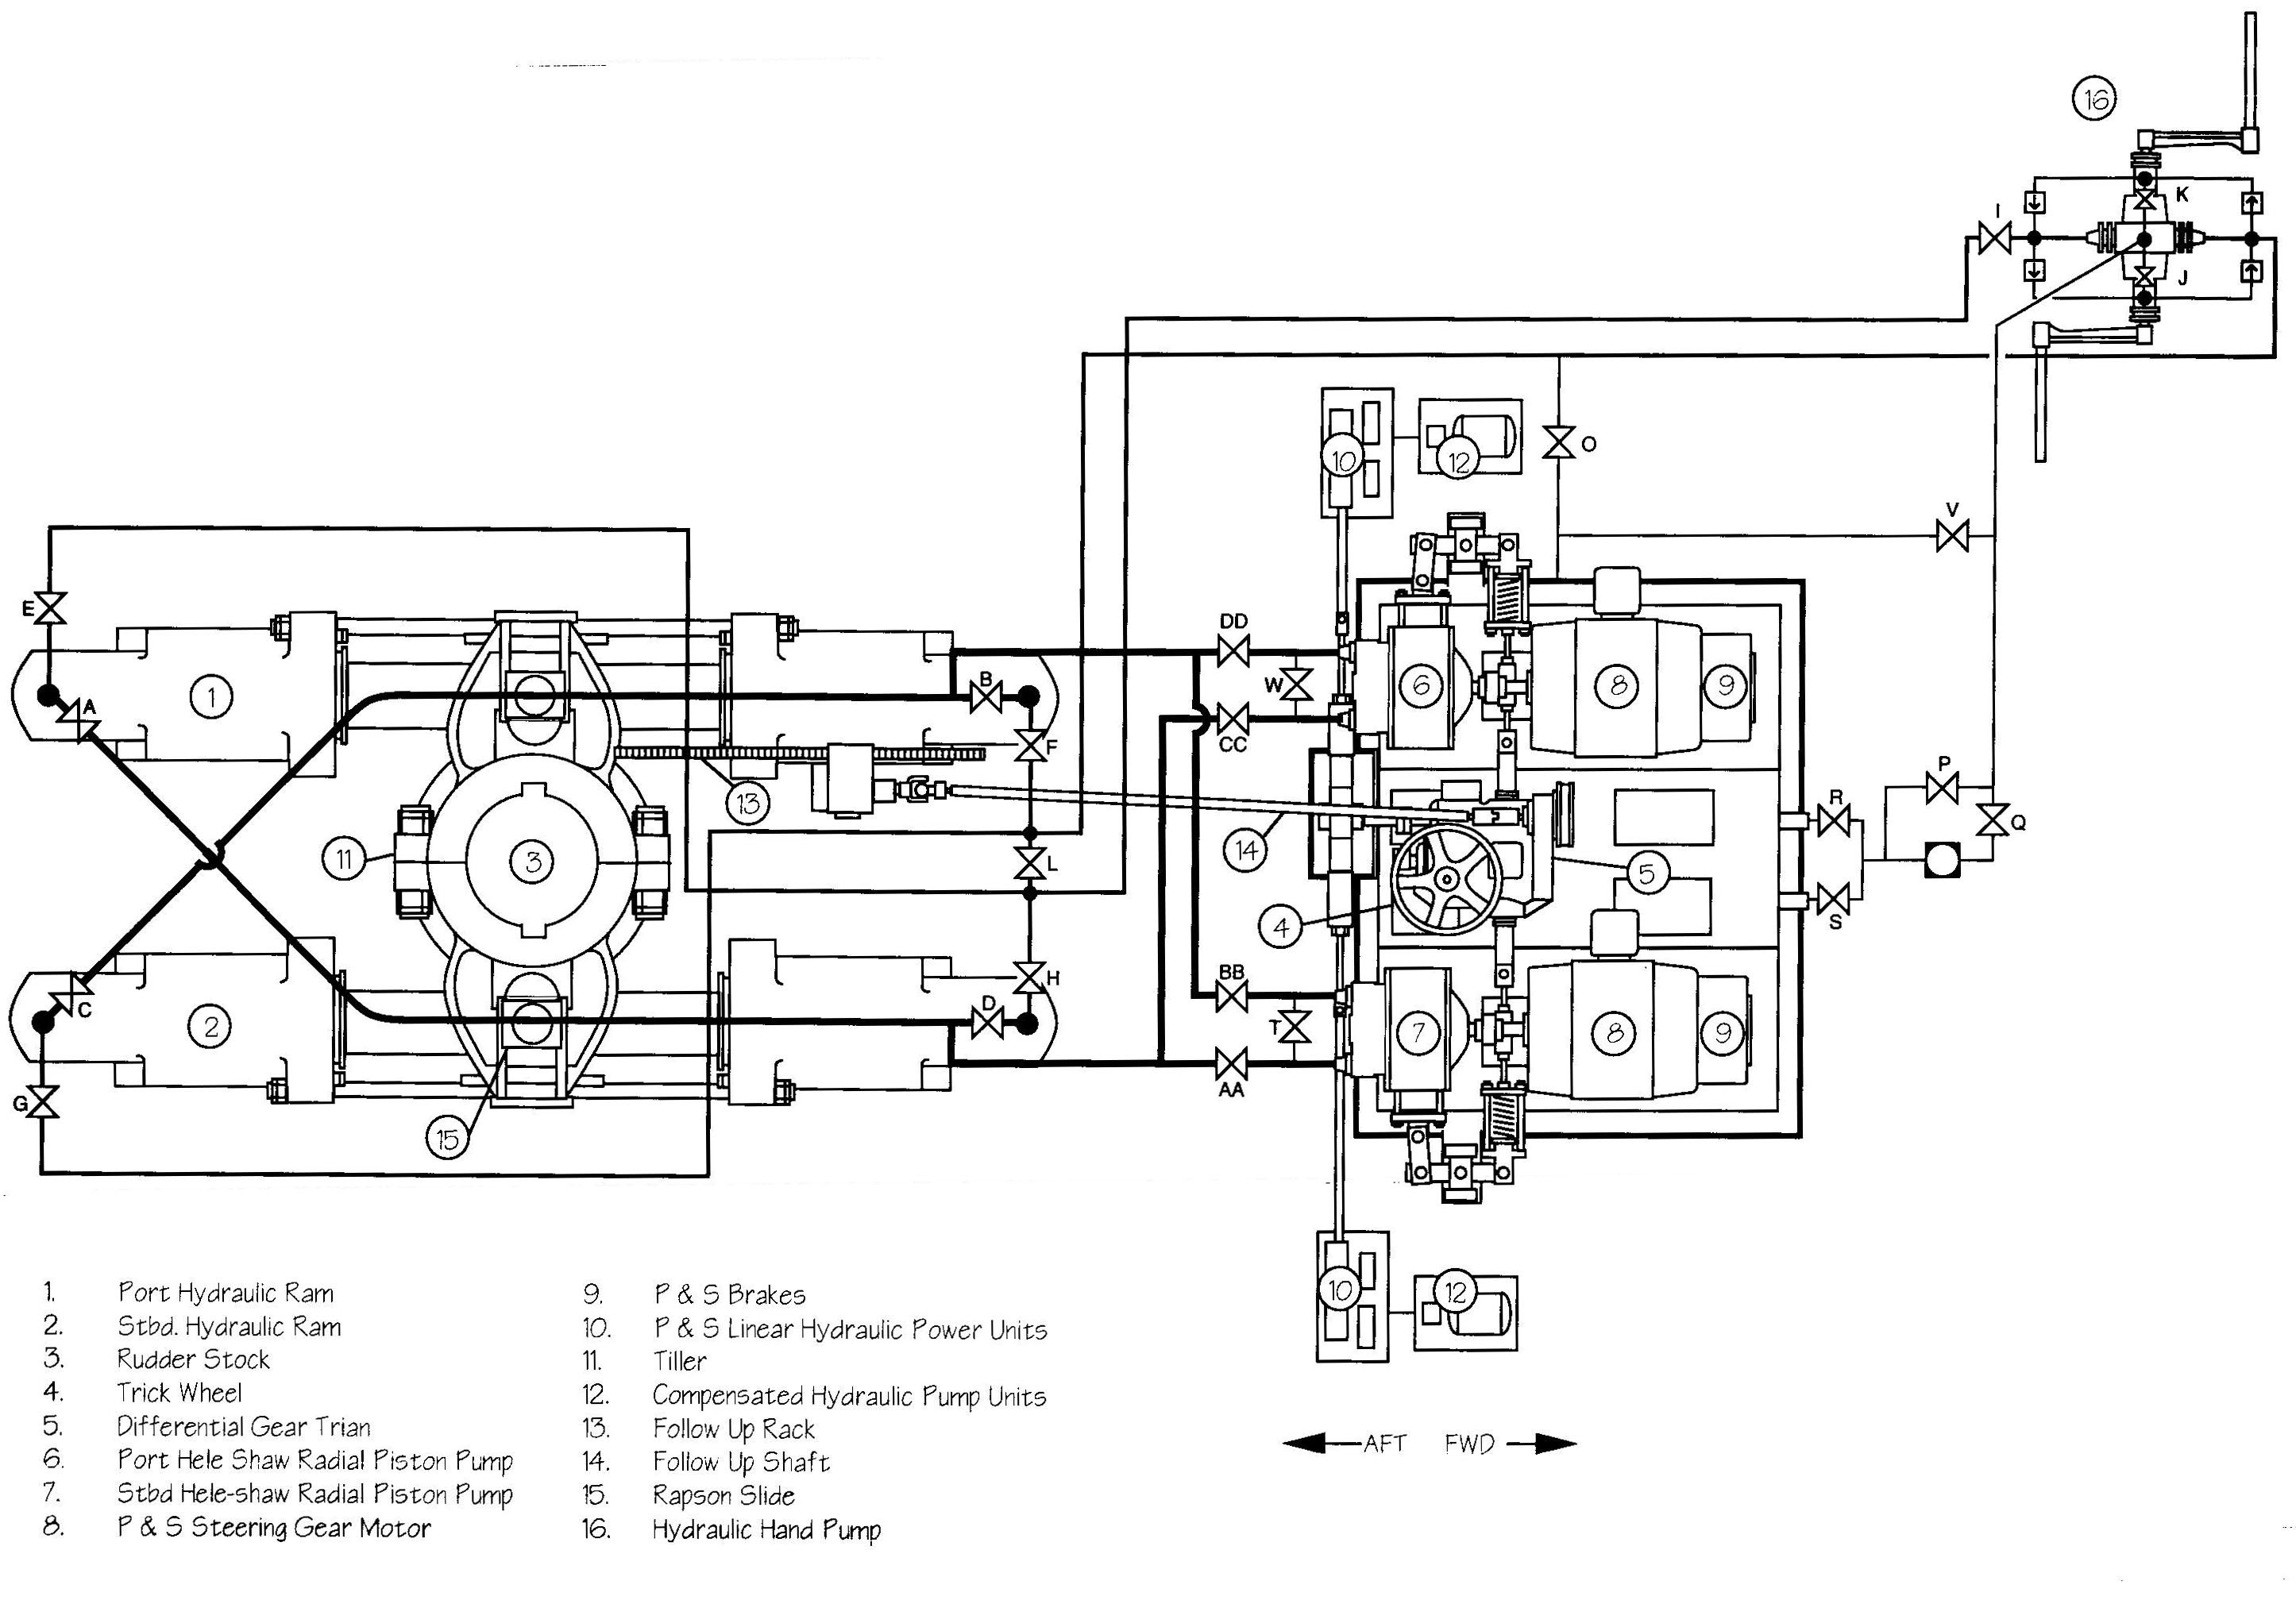 Hydraulic Steering Diagram Tsps Engineering Manual Of Hydraulic Steering Diagram